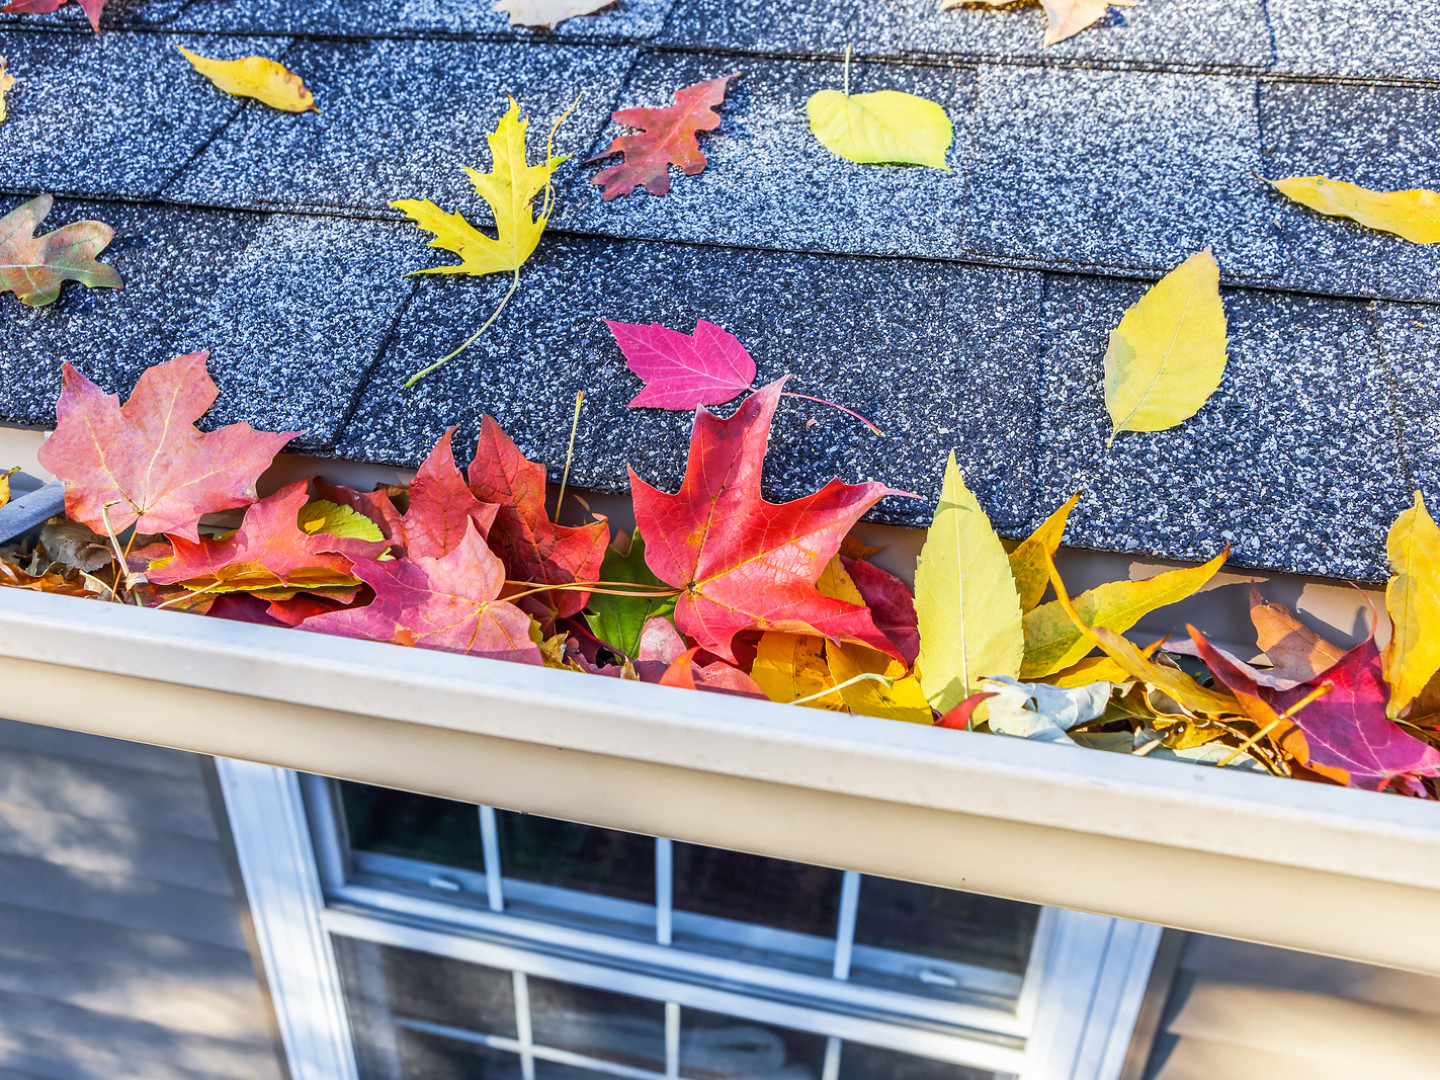 gutter cleaning services Battle Creek and Kalamazoo, MI